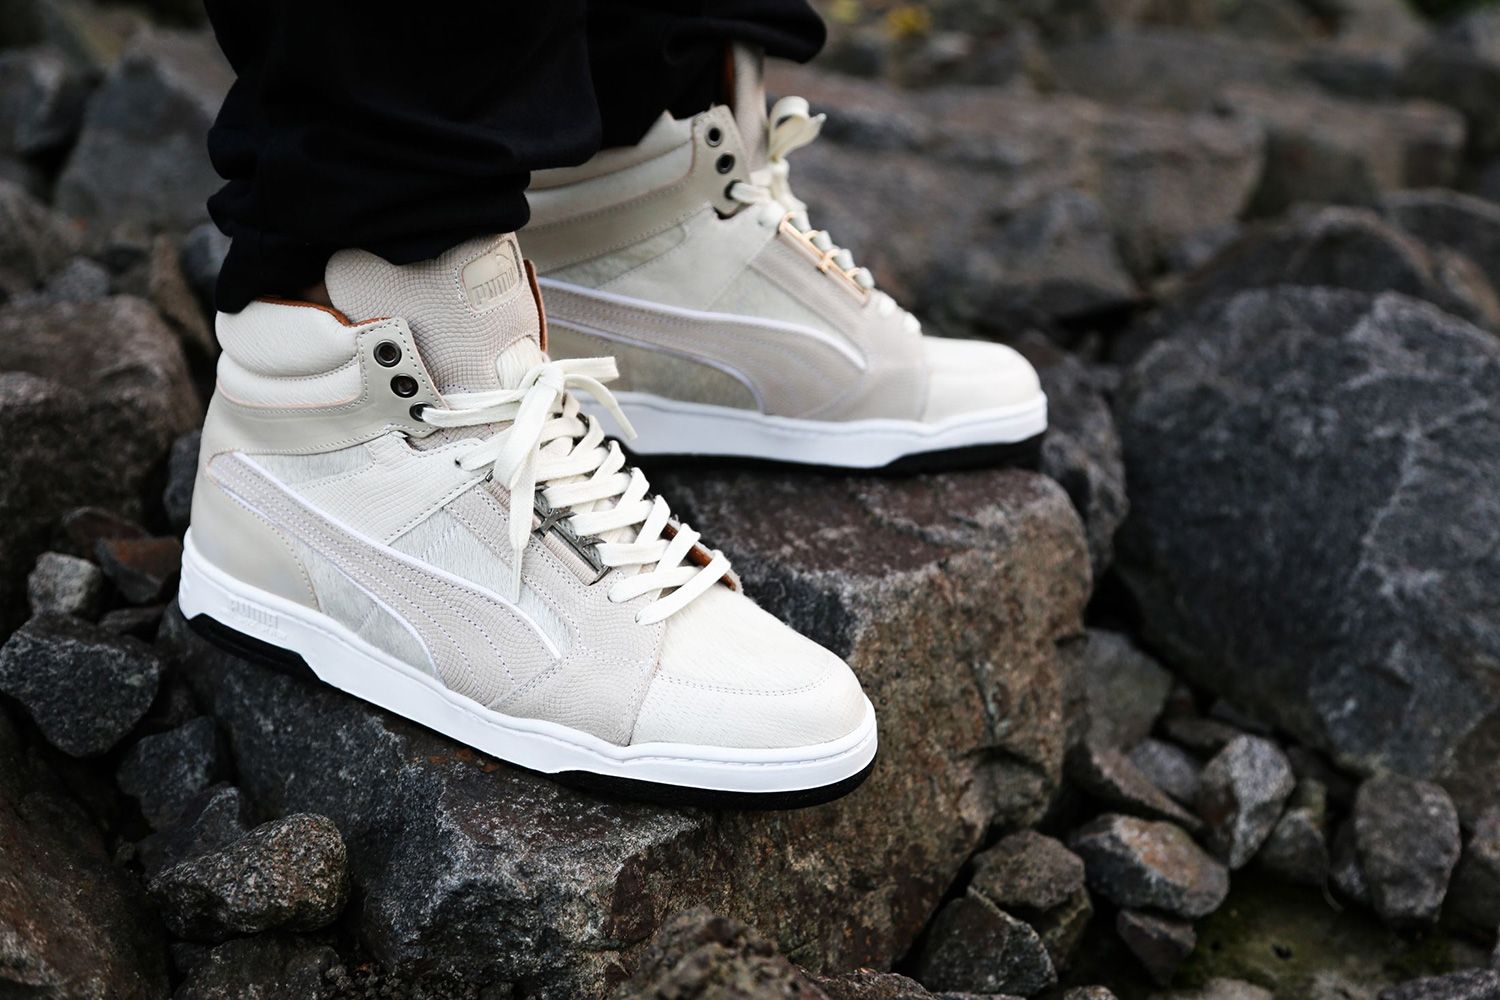 PUMA's New Rider Pack Is a Reminder That You Can't Beat the